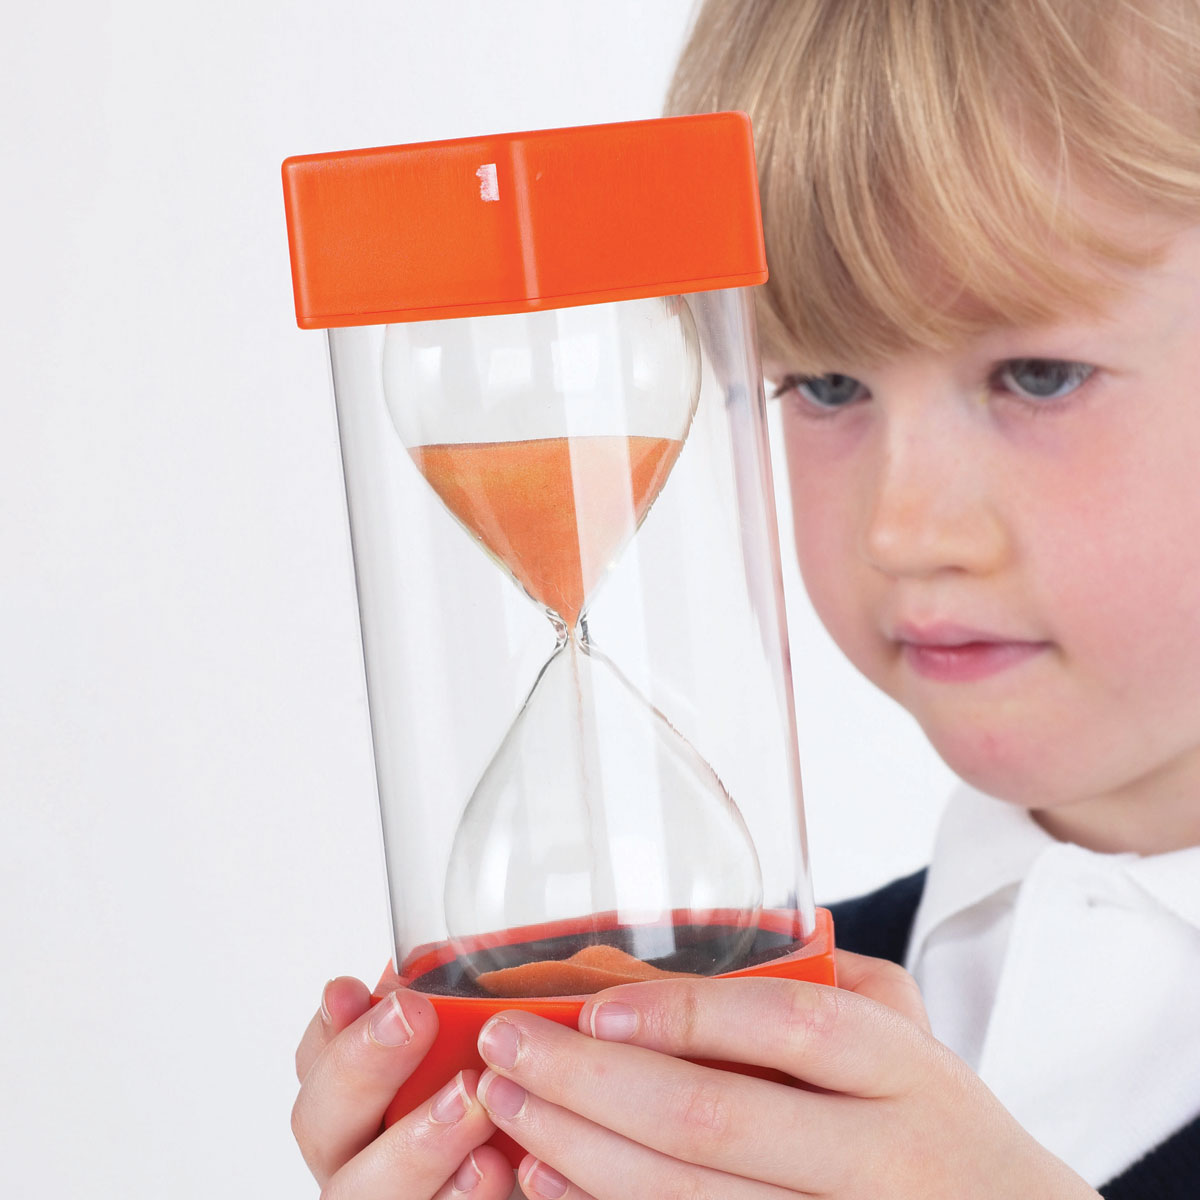 TickiT Large Sand Timer 10 Minute (Orange)